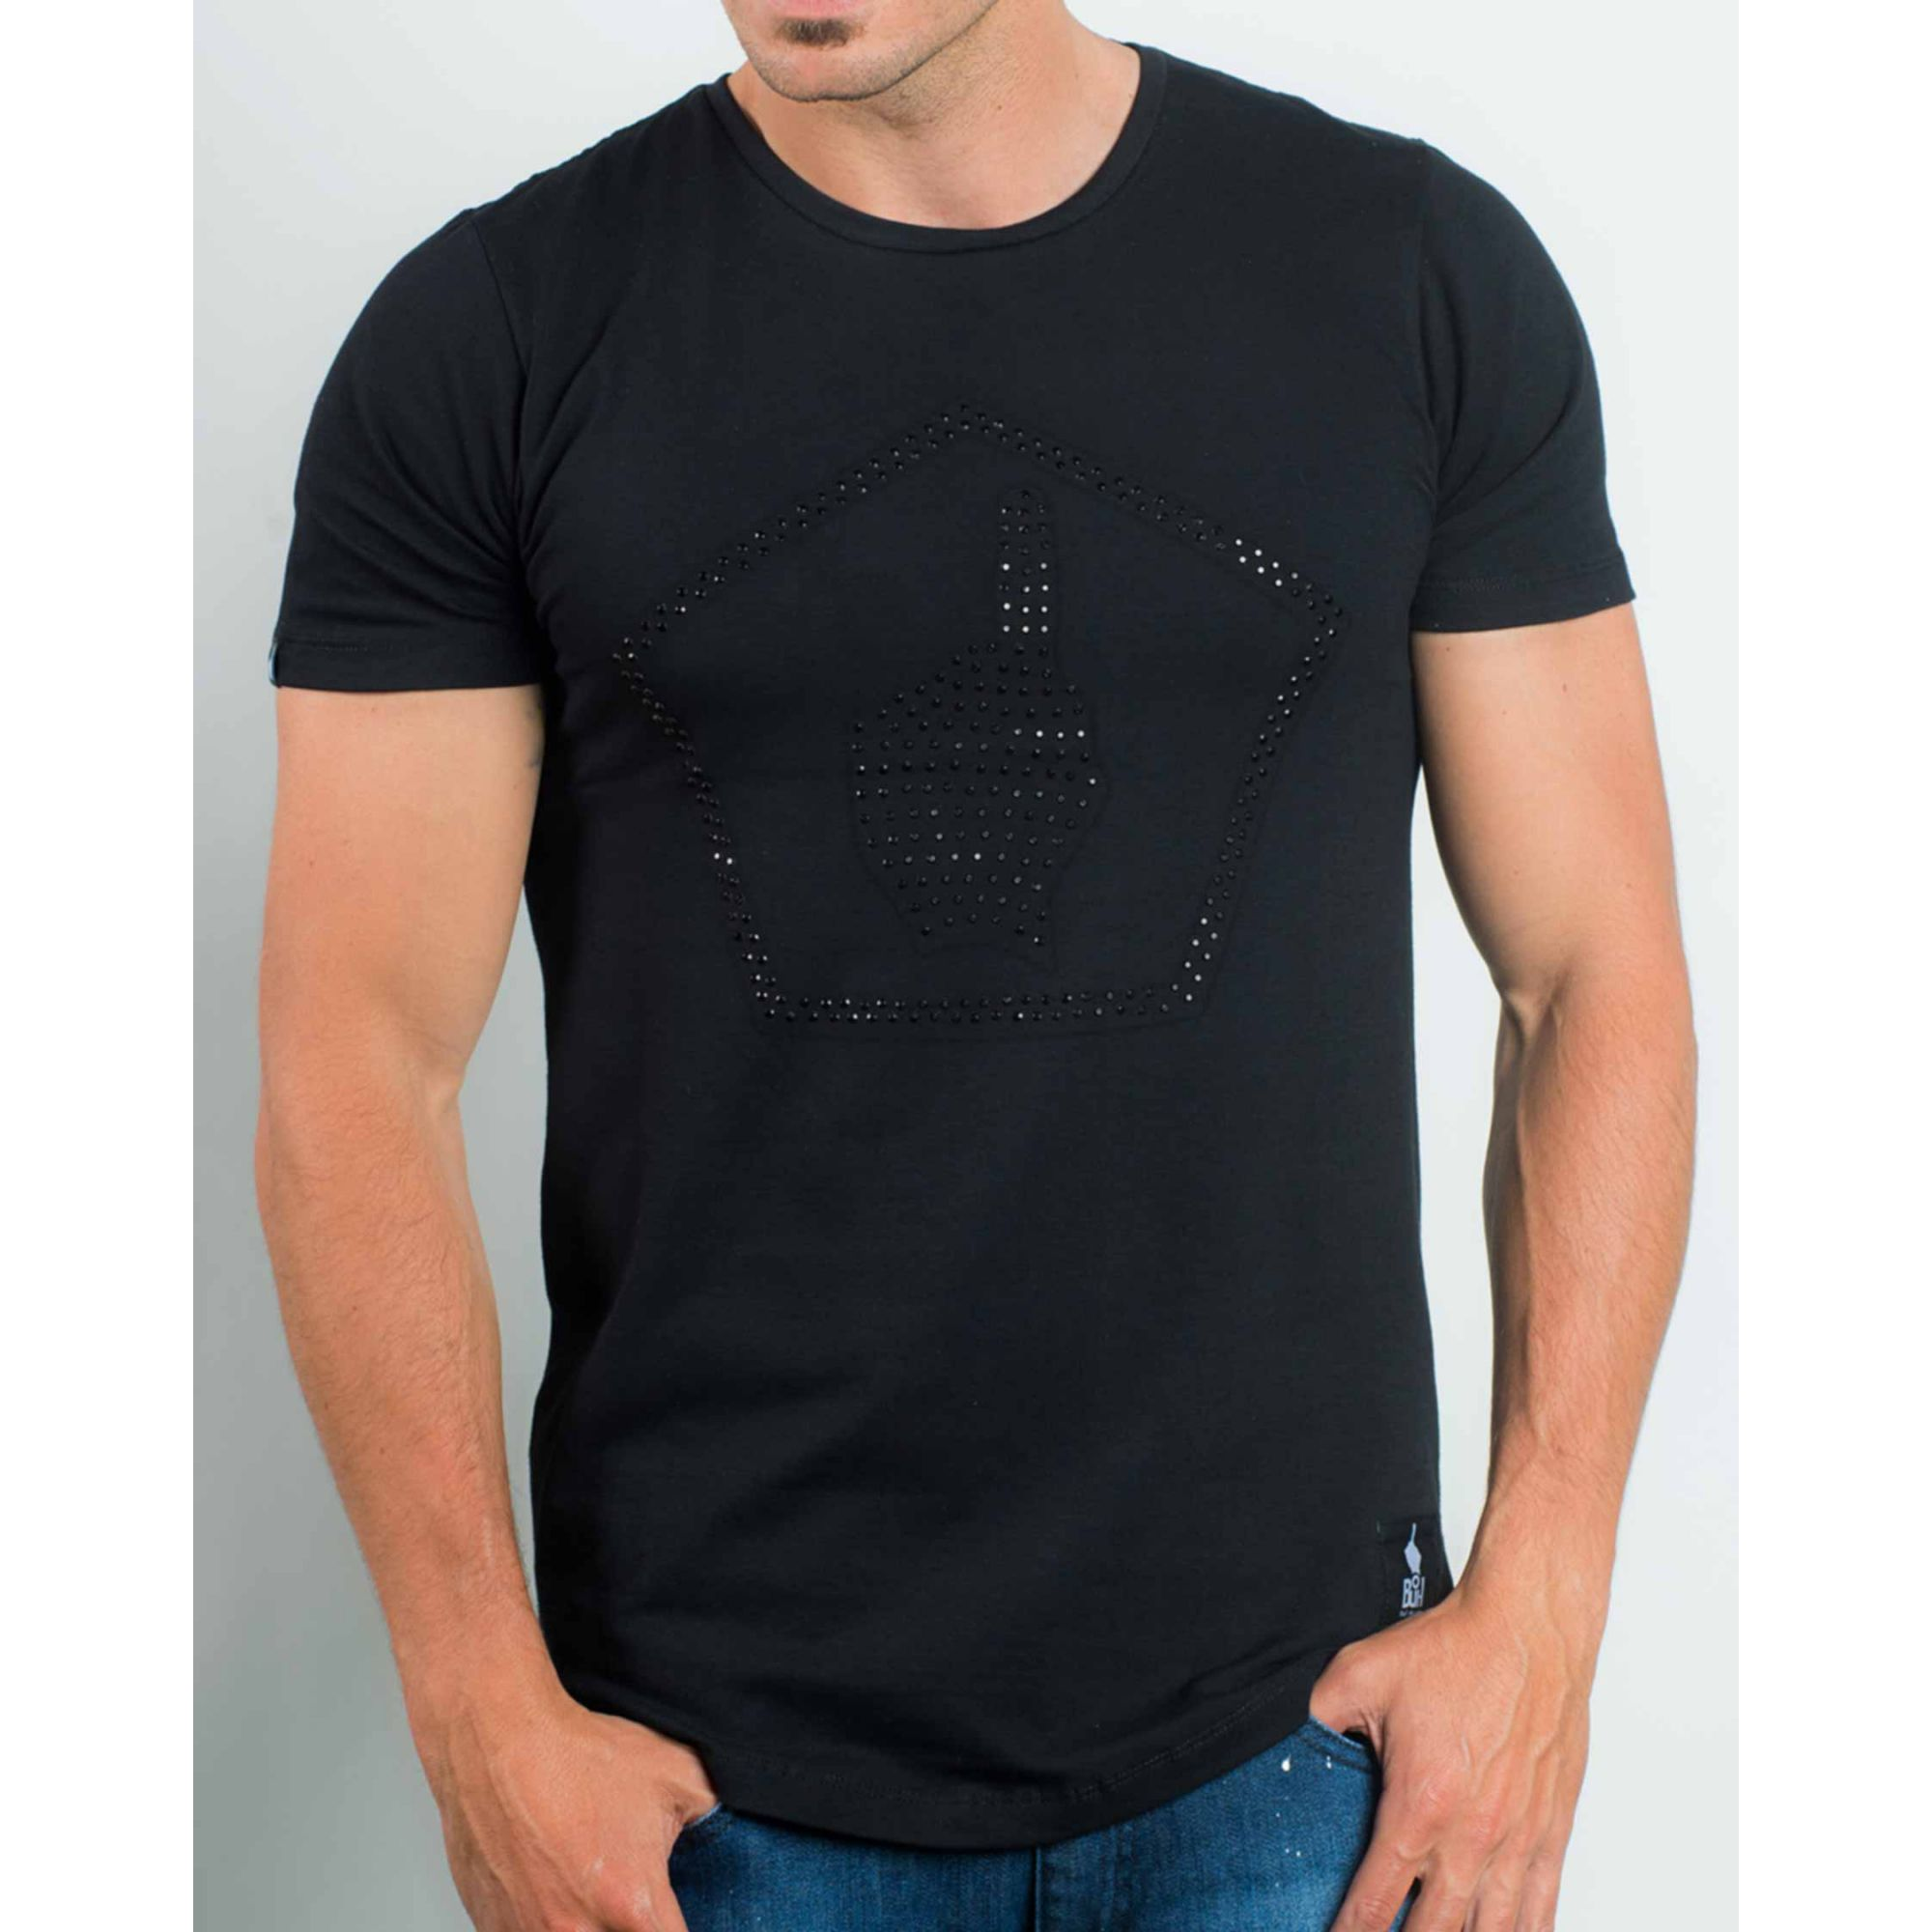 Camiseta Buh Strass Black